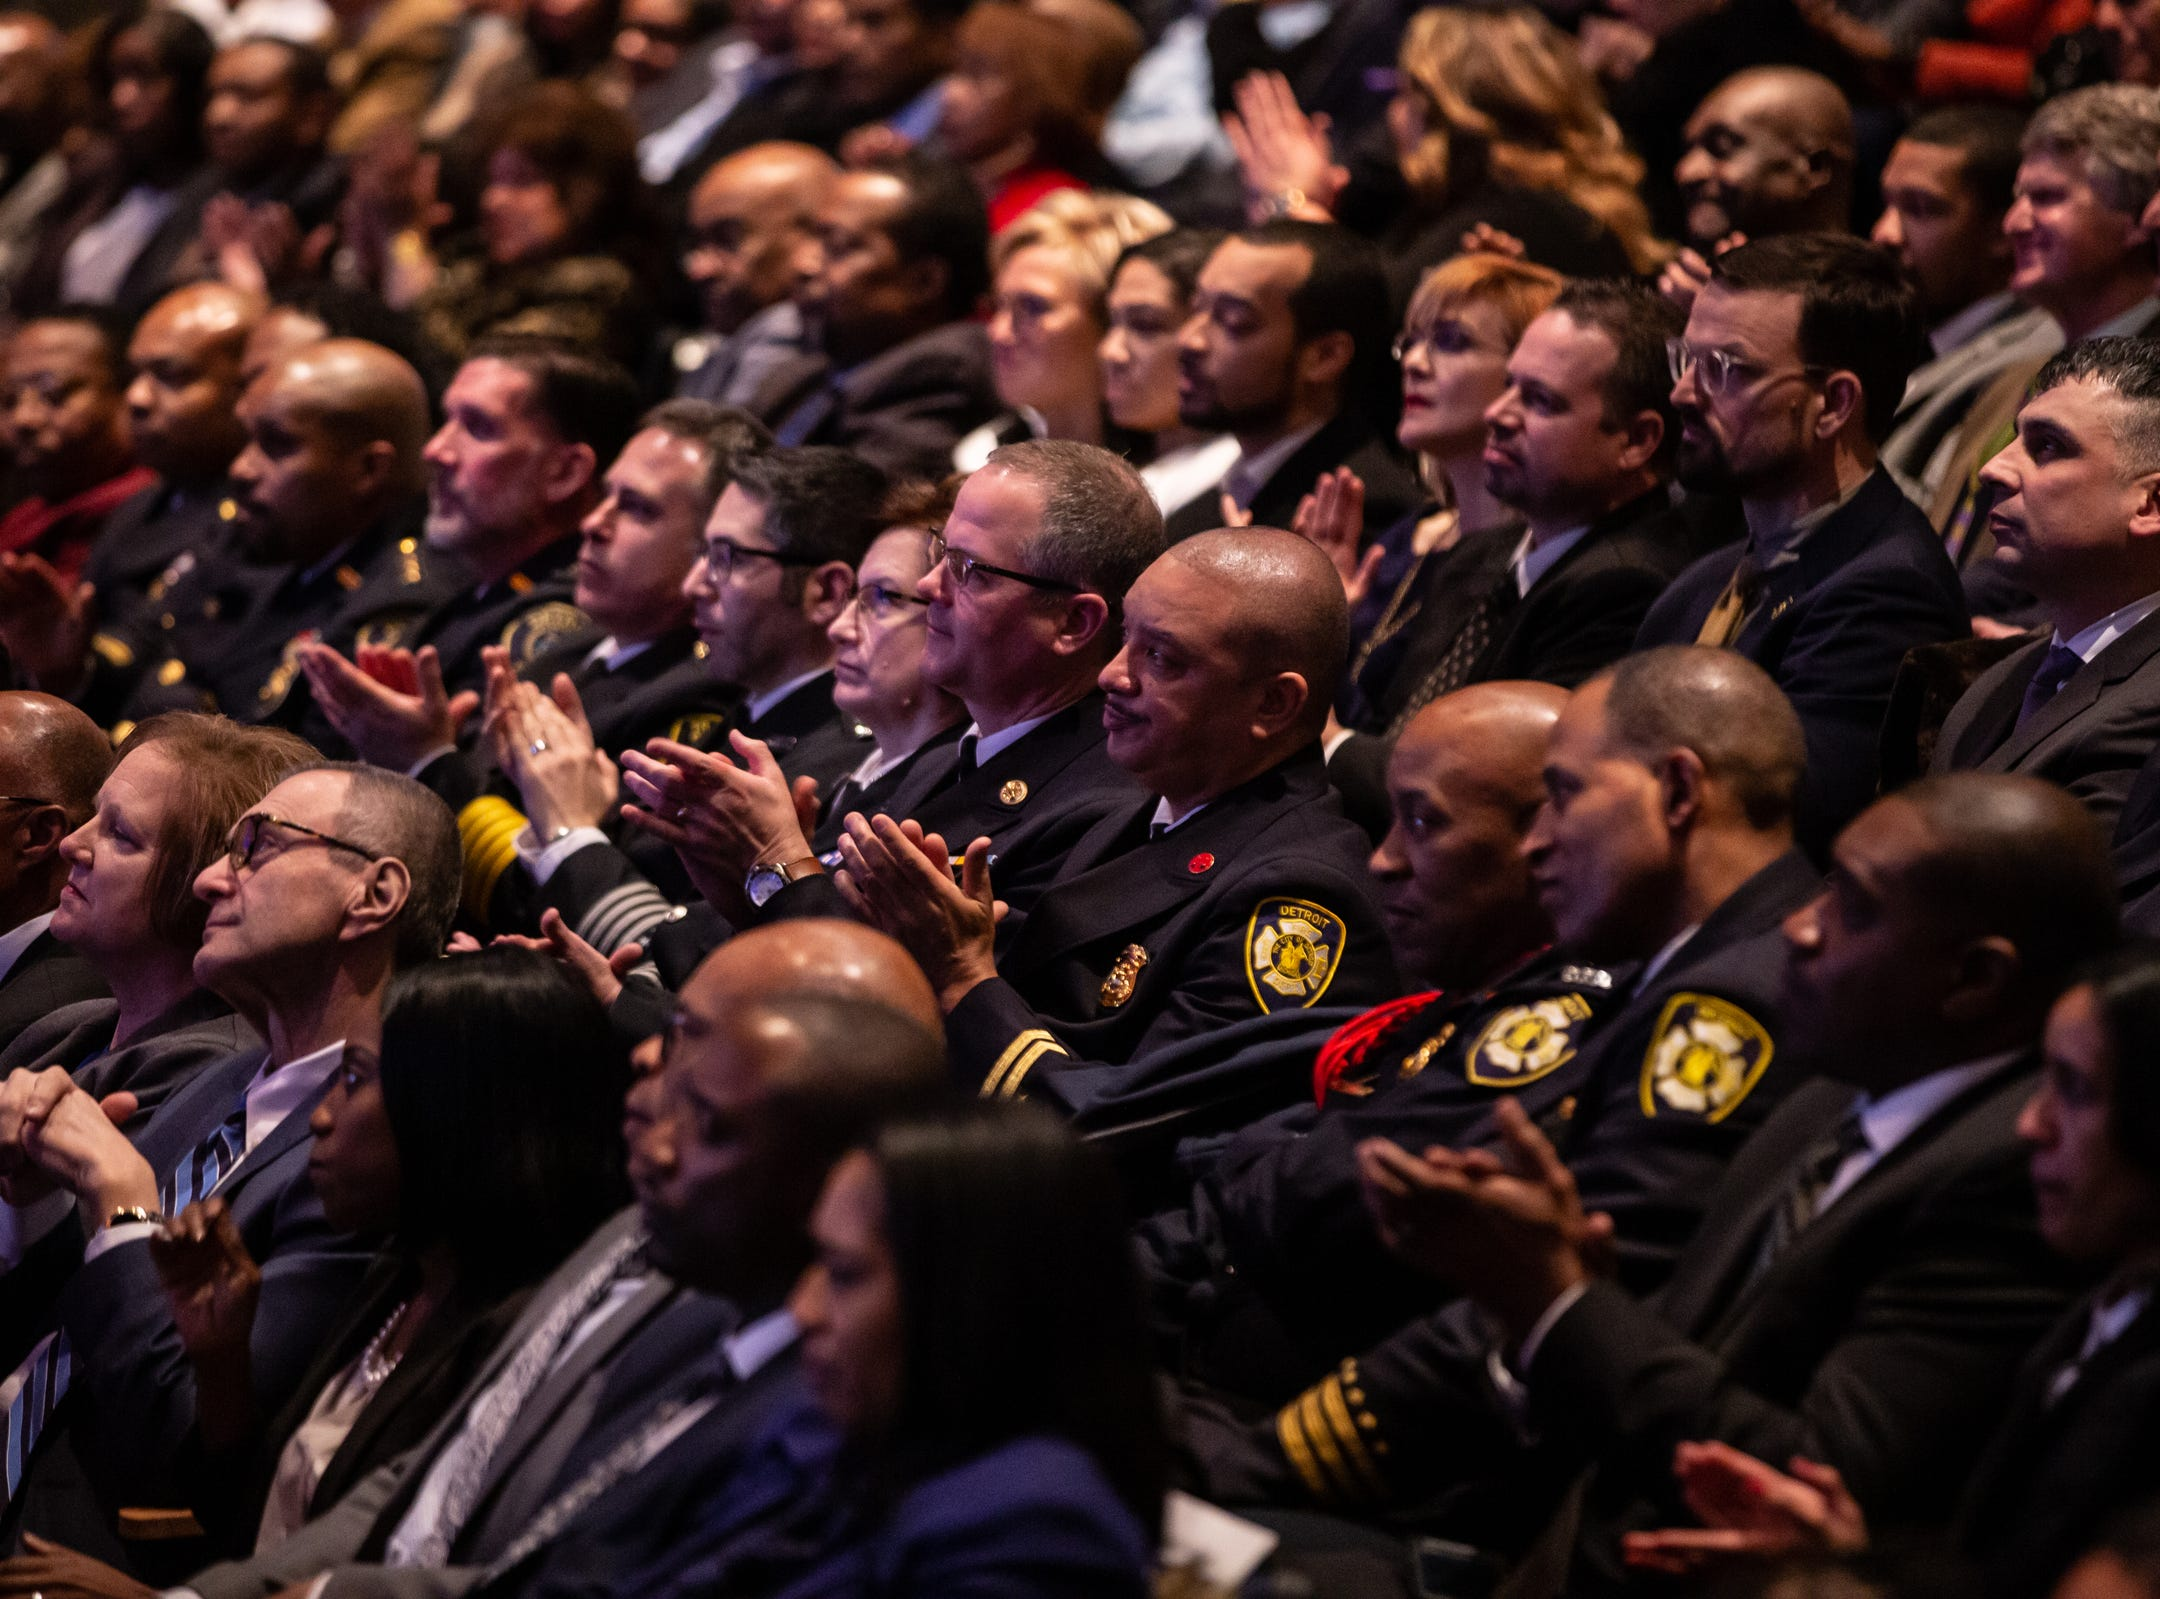 The crowd applauds Detroit Mayor Mike Duggan as he speaks during the 2019 State of the City Address on Tuesday, March 5, 2019 at East English Village Preparatory Academy in Detroit.